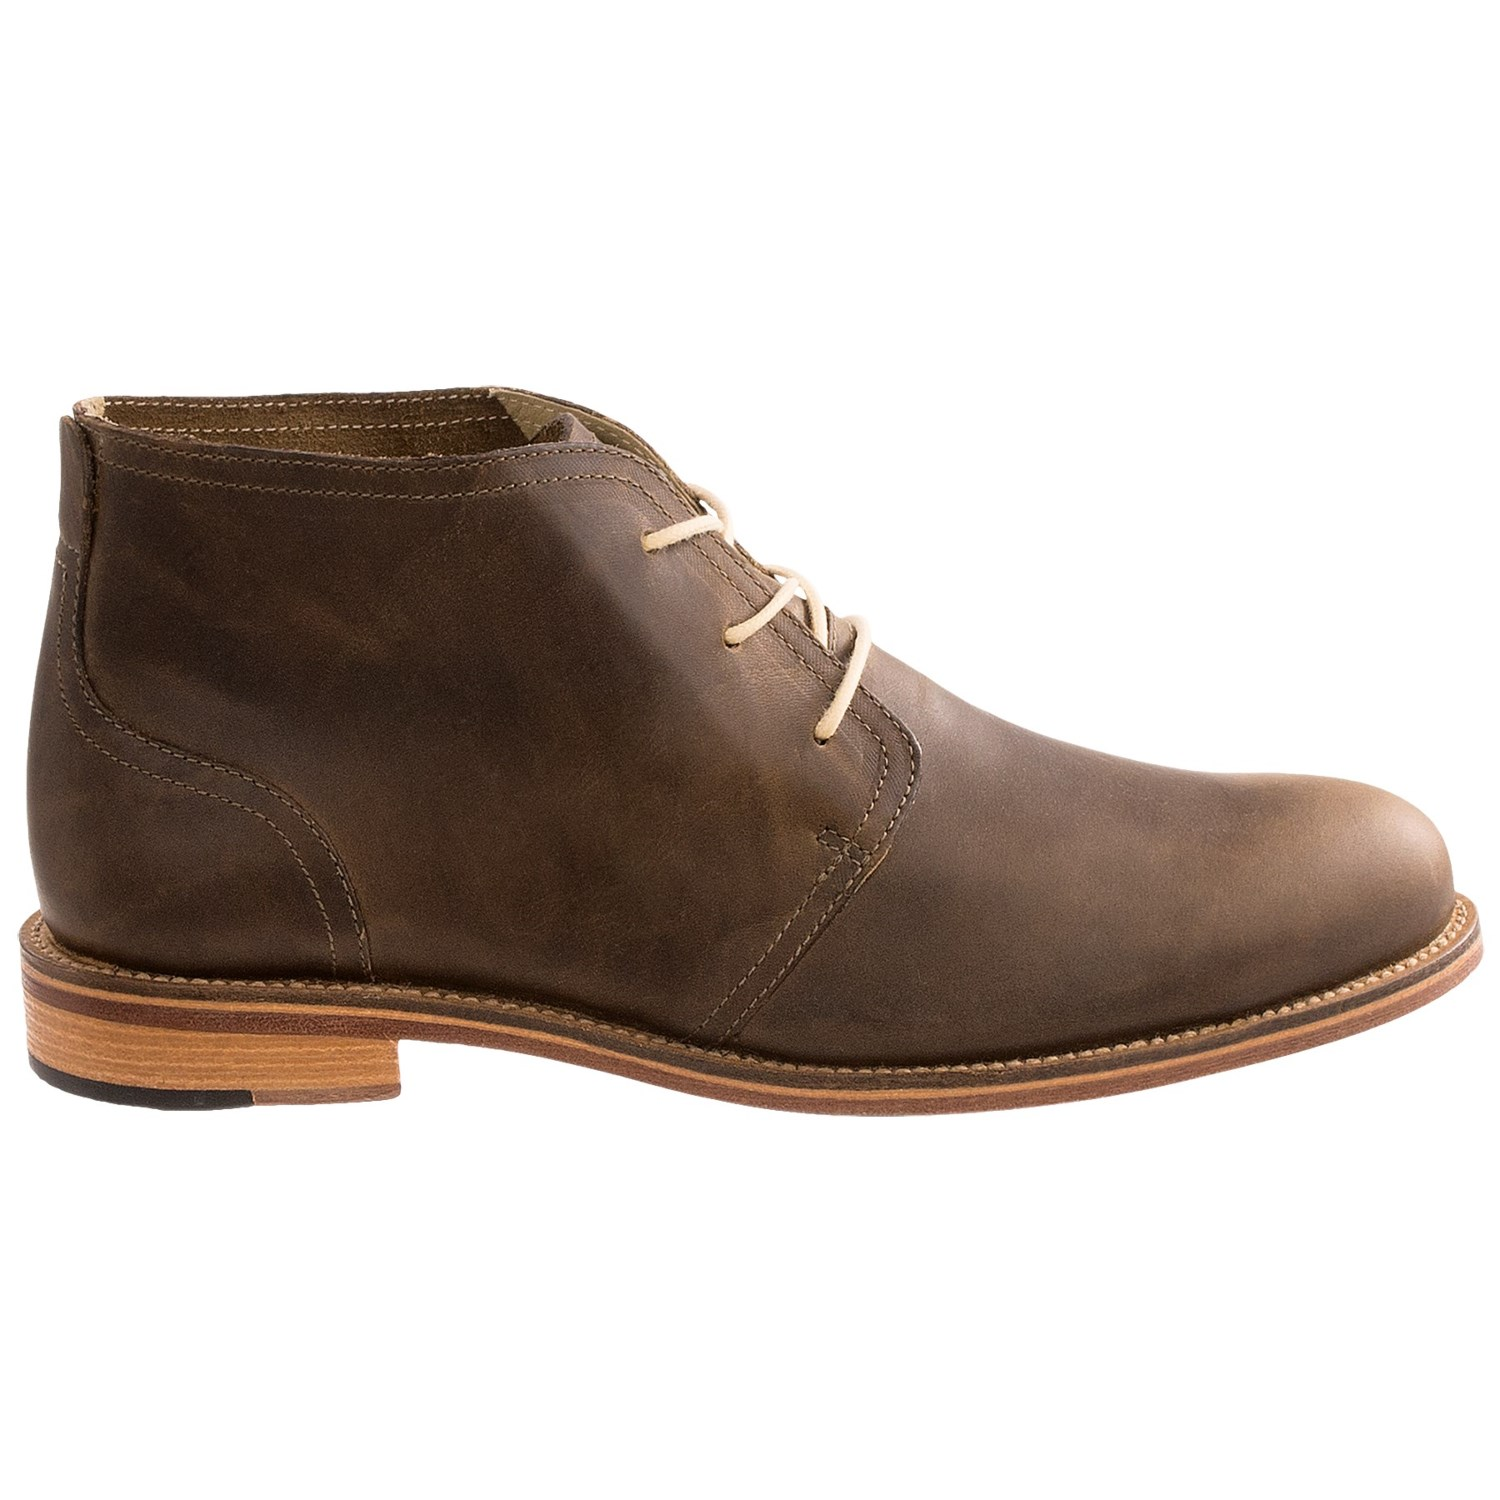 J Shoes Monarch Chukka Boots (For Men) 8416X - Save 80%